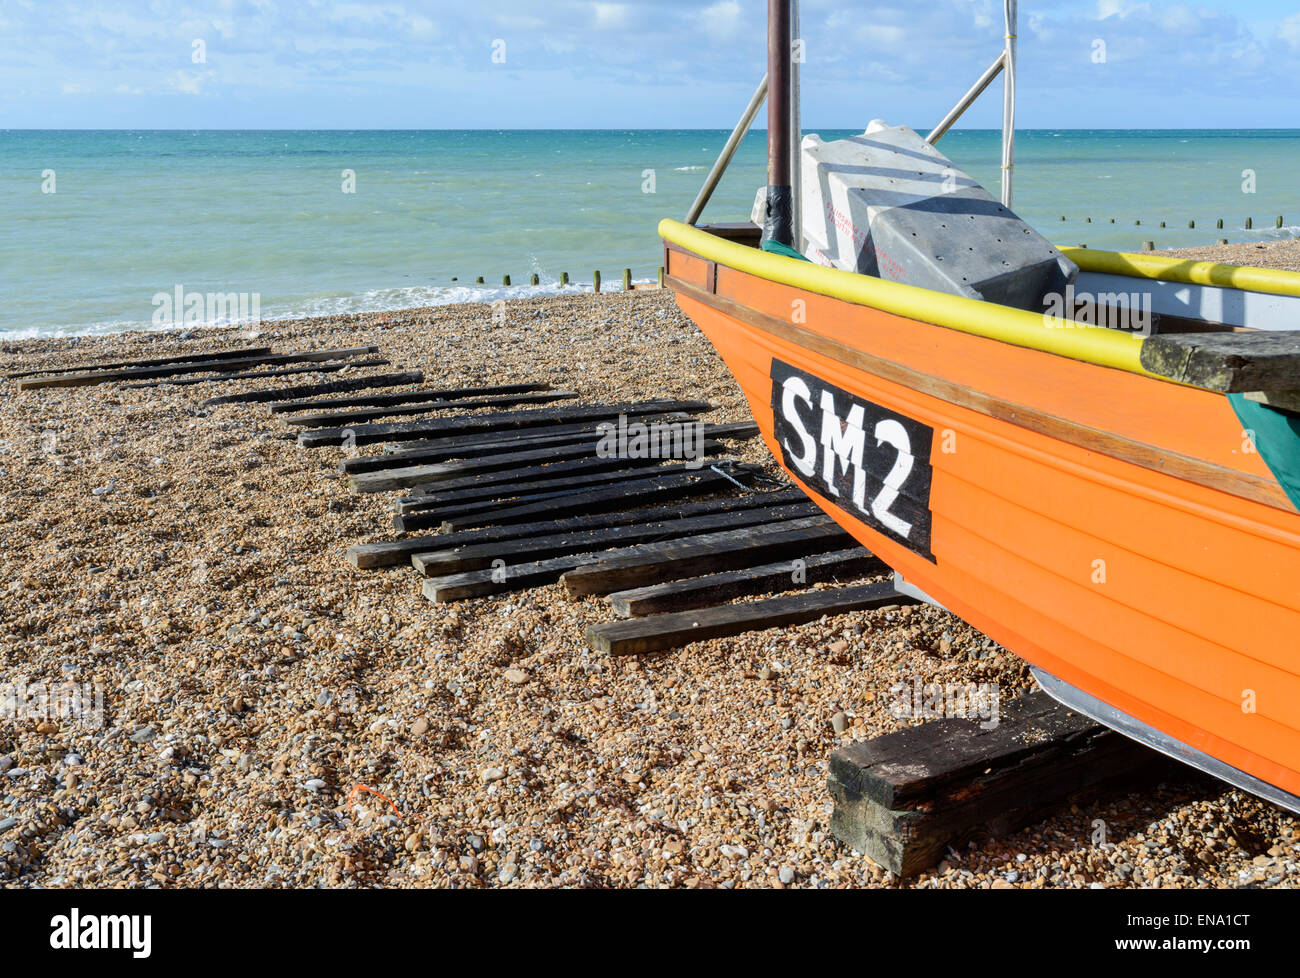 Small wooden orange fishing boat and launching rollers on a shingle beach. - Stock Image